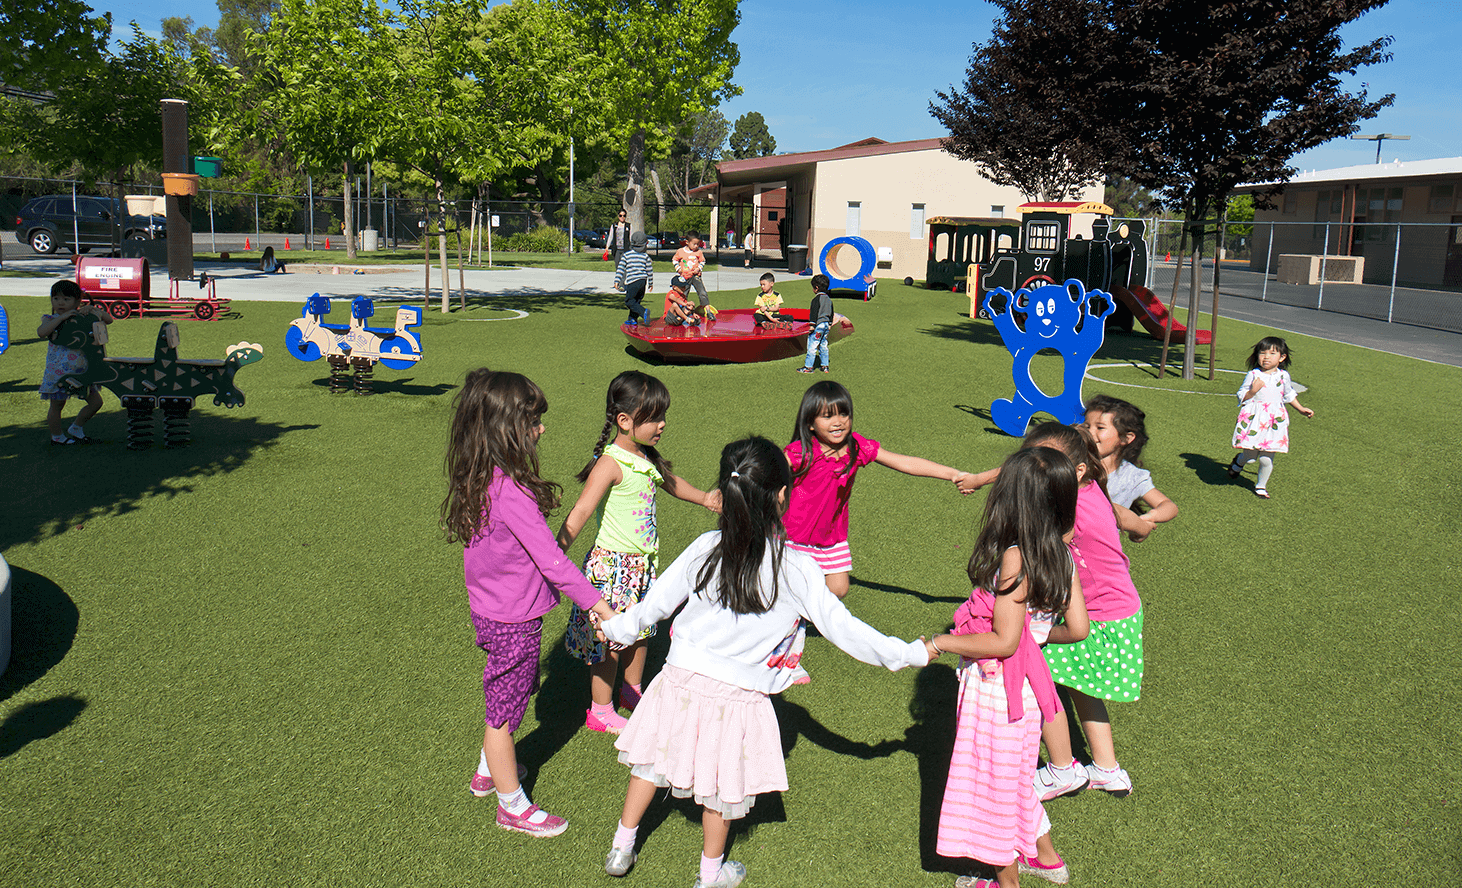 Preschool Game | Challenger School - Almaden | Private School In San Jose, California